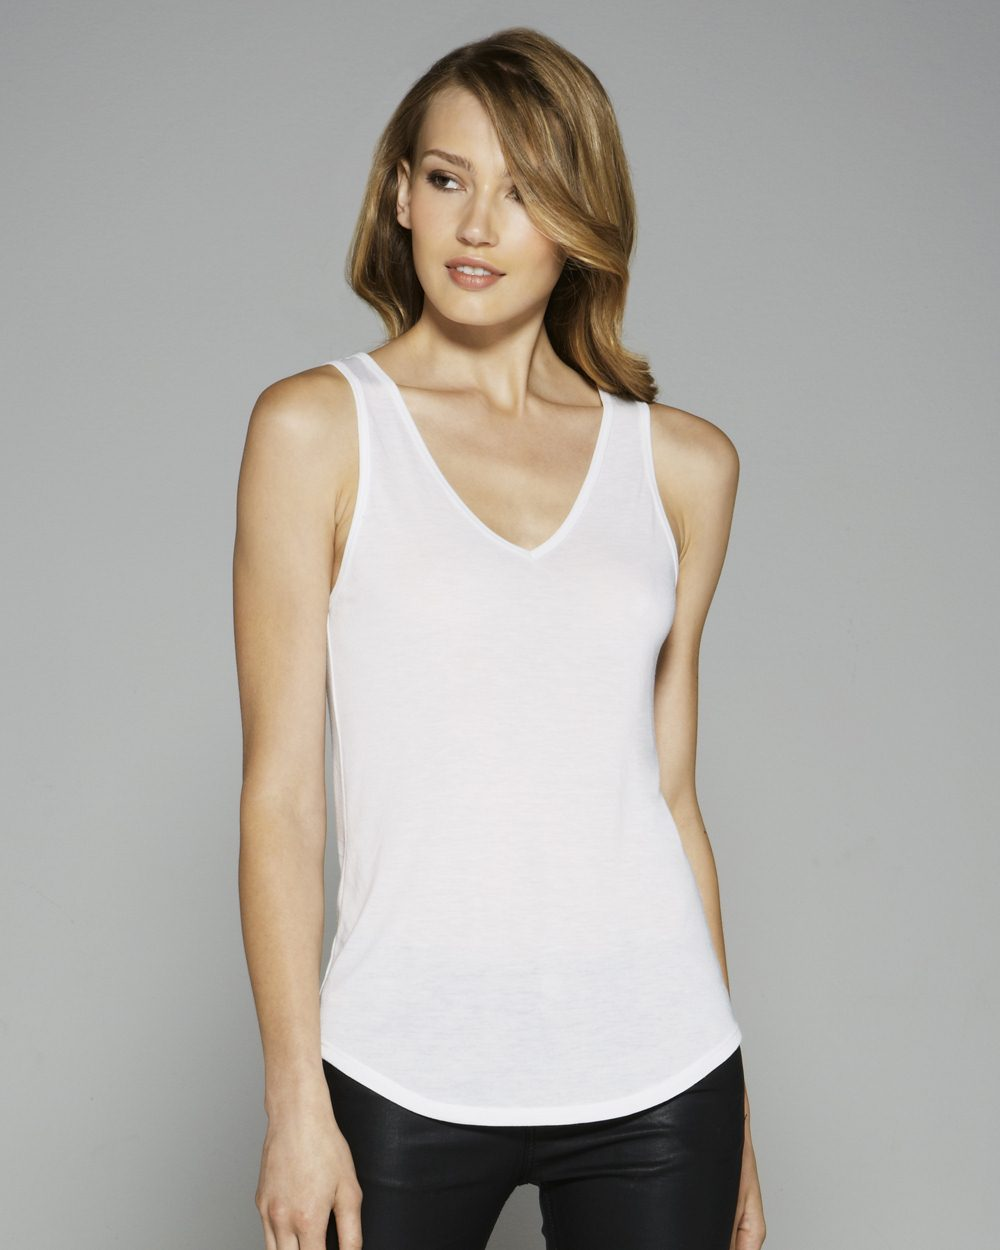 77e978ba Bella 8805 - Ladies' Flowy V-Neck Tank $7.16 - Women's Tanks